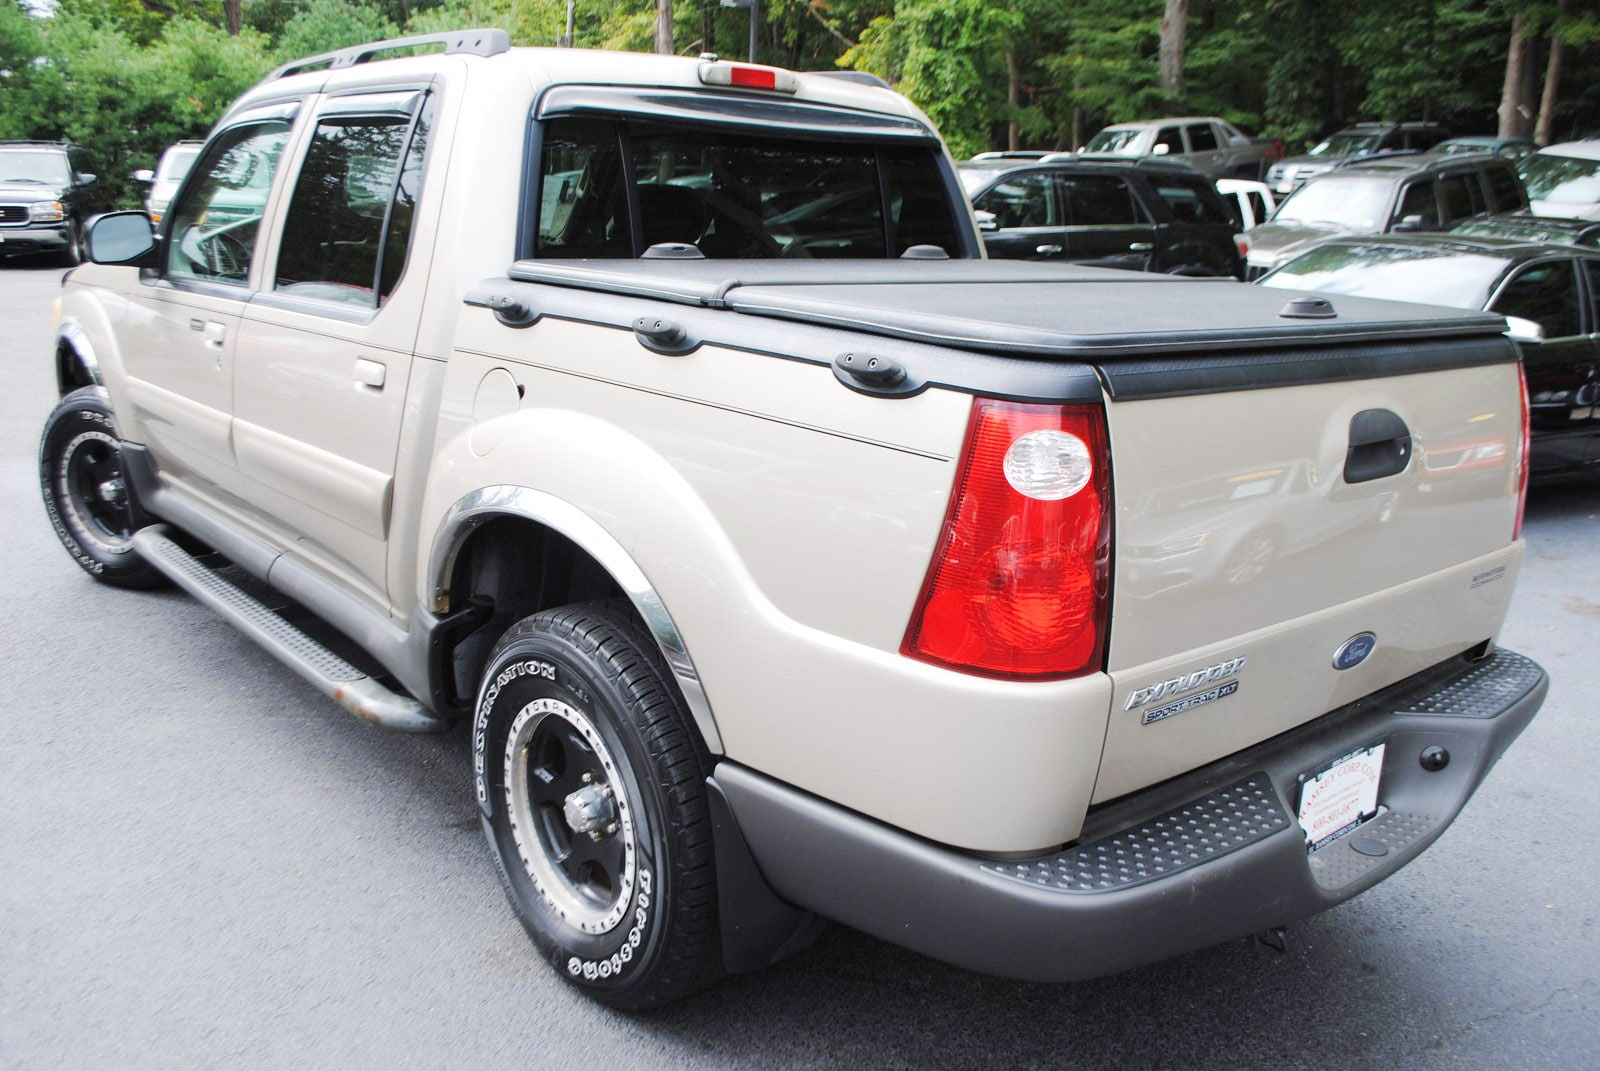 used 2005 ford explorer sport trac for sale west milford nj. Black Bedroom Furniture Sets. Home Design Ideas